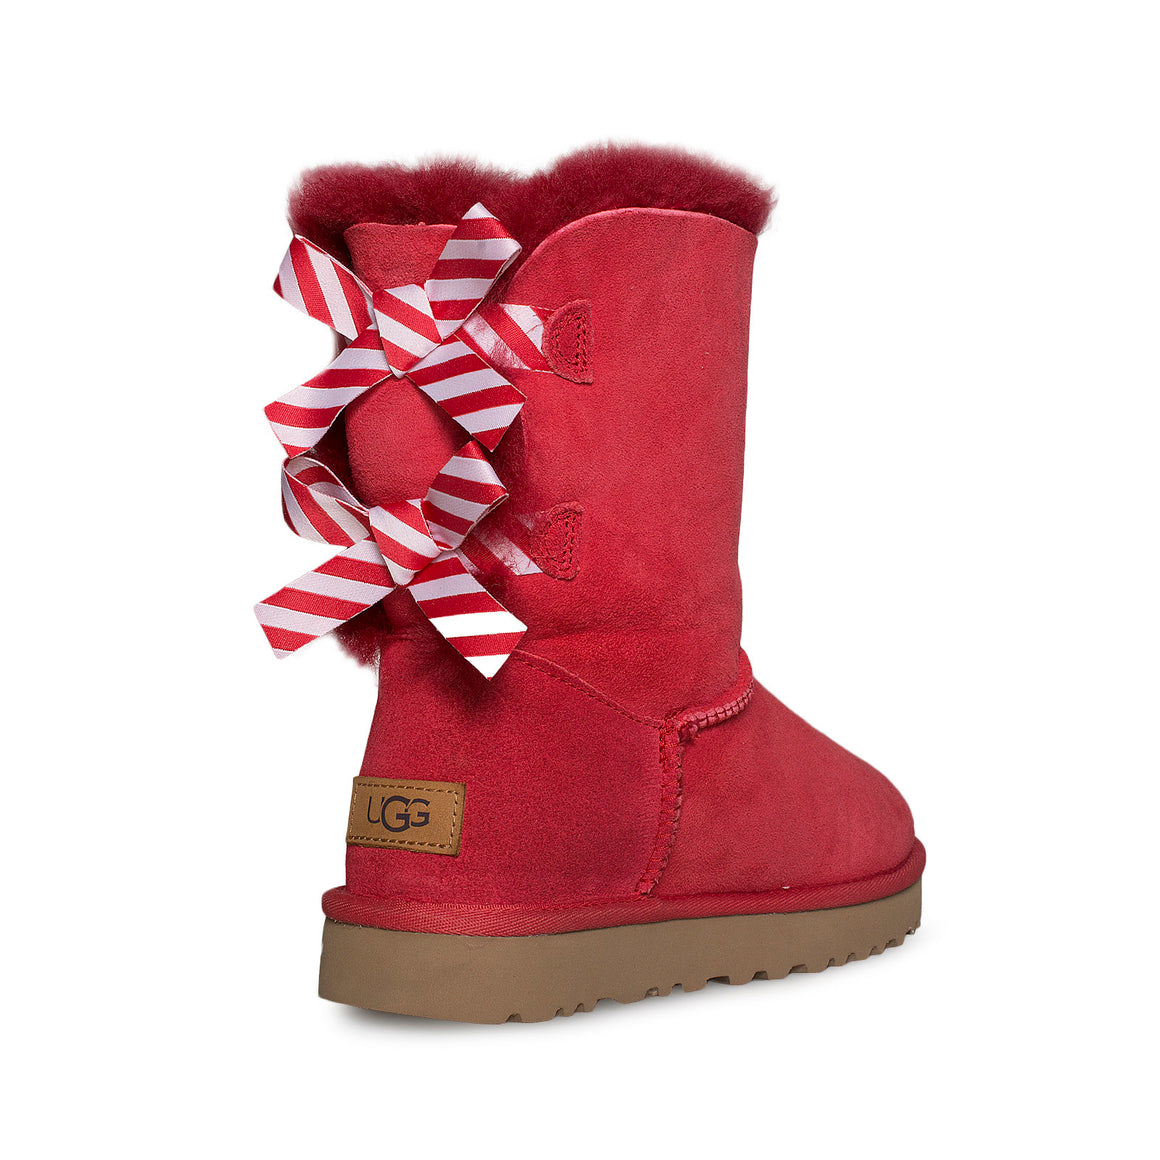 UGG Bailey Bow II Diagonal Stripes Poppy Red Boots - Women's